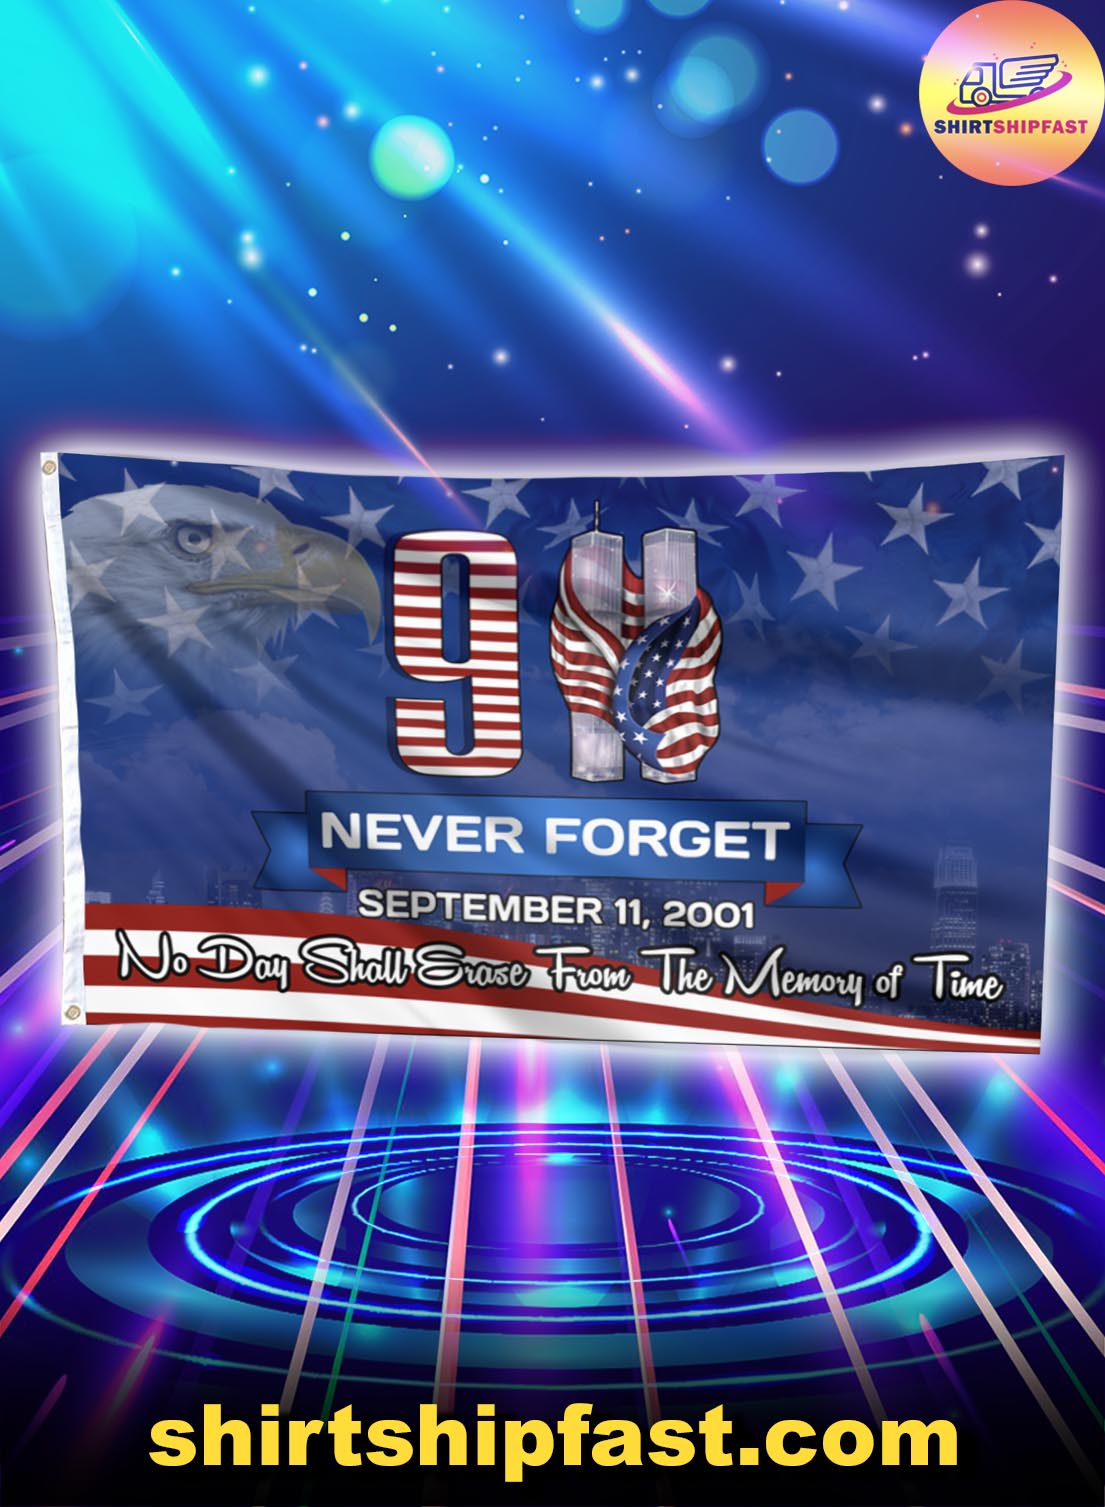 9 11 Never forget No day shall erase from the memory of time flag - Picture 1